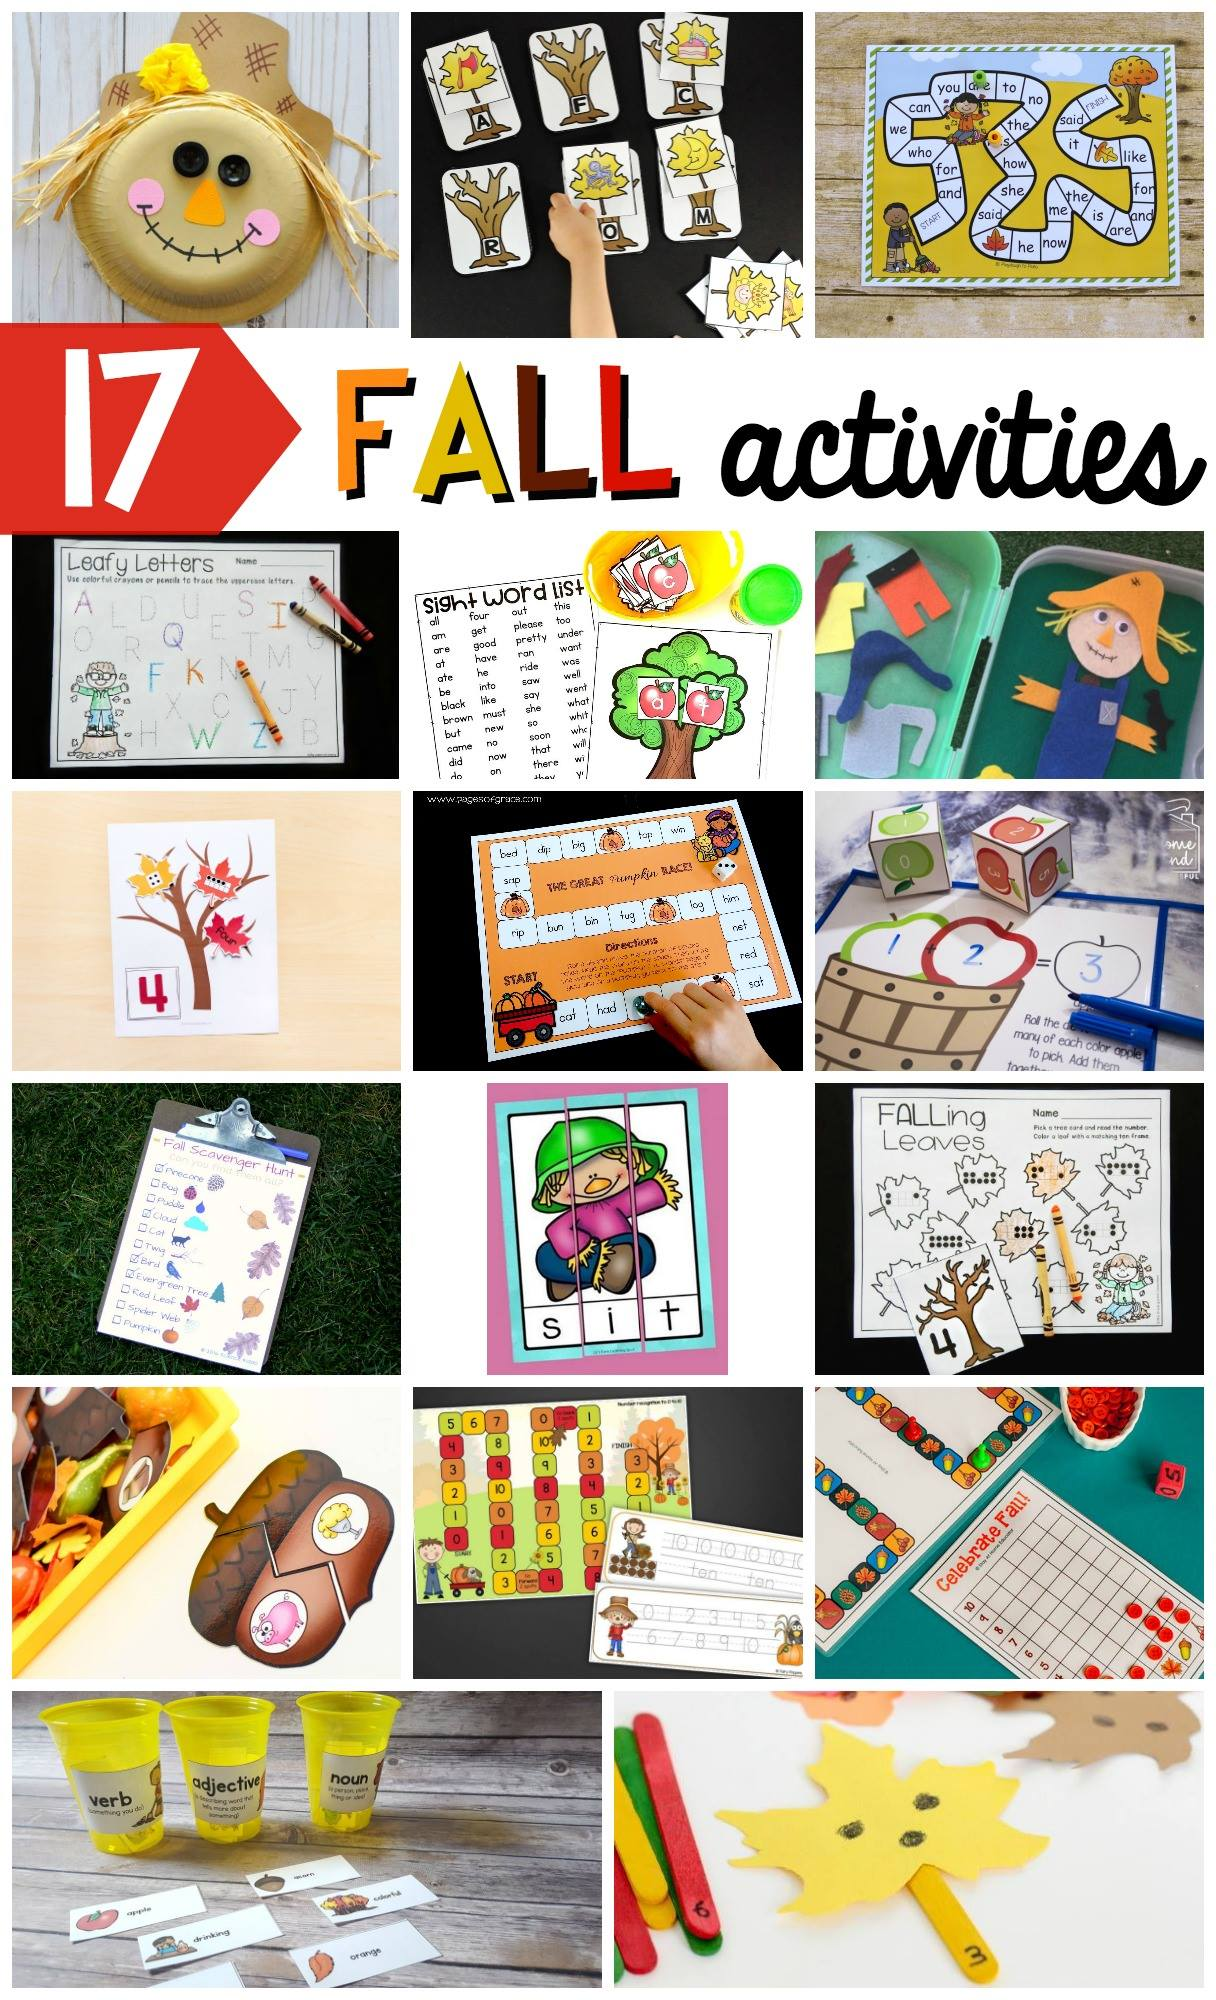 Super fun fall activities for kids!